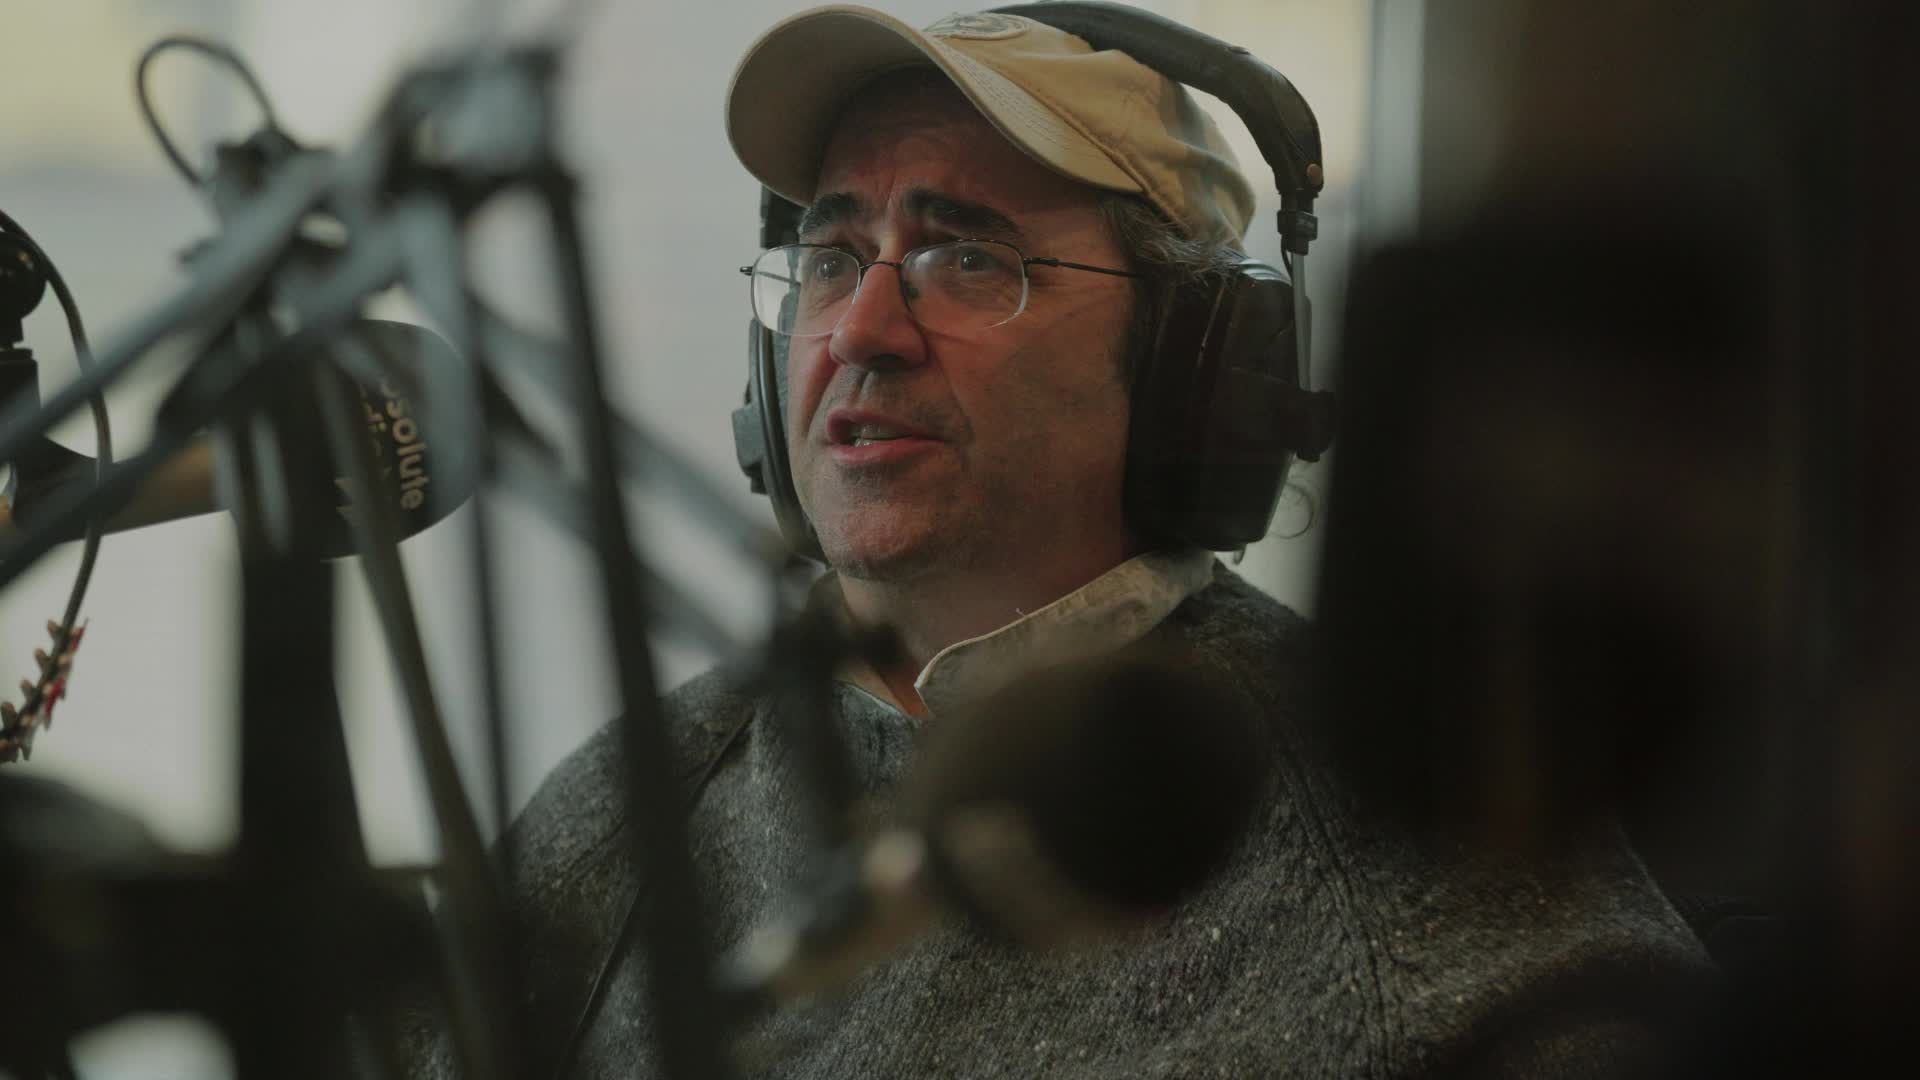 Danny Baker's 'Racist' Royal Baby Tweet Is Being Investigated By Police